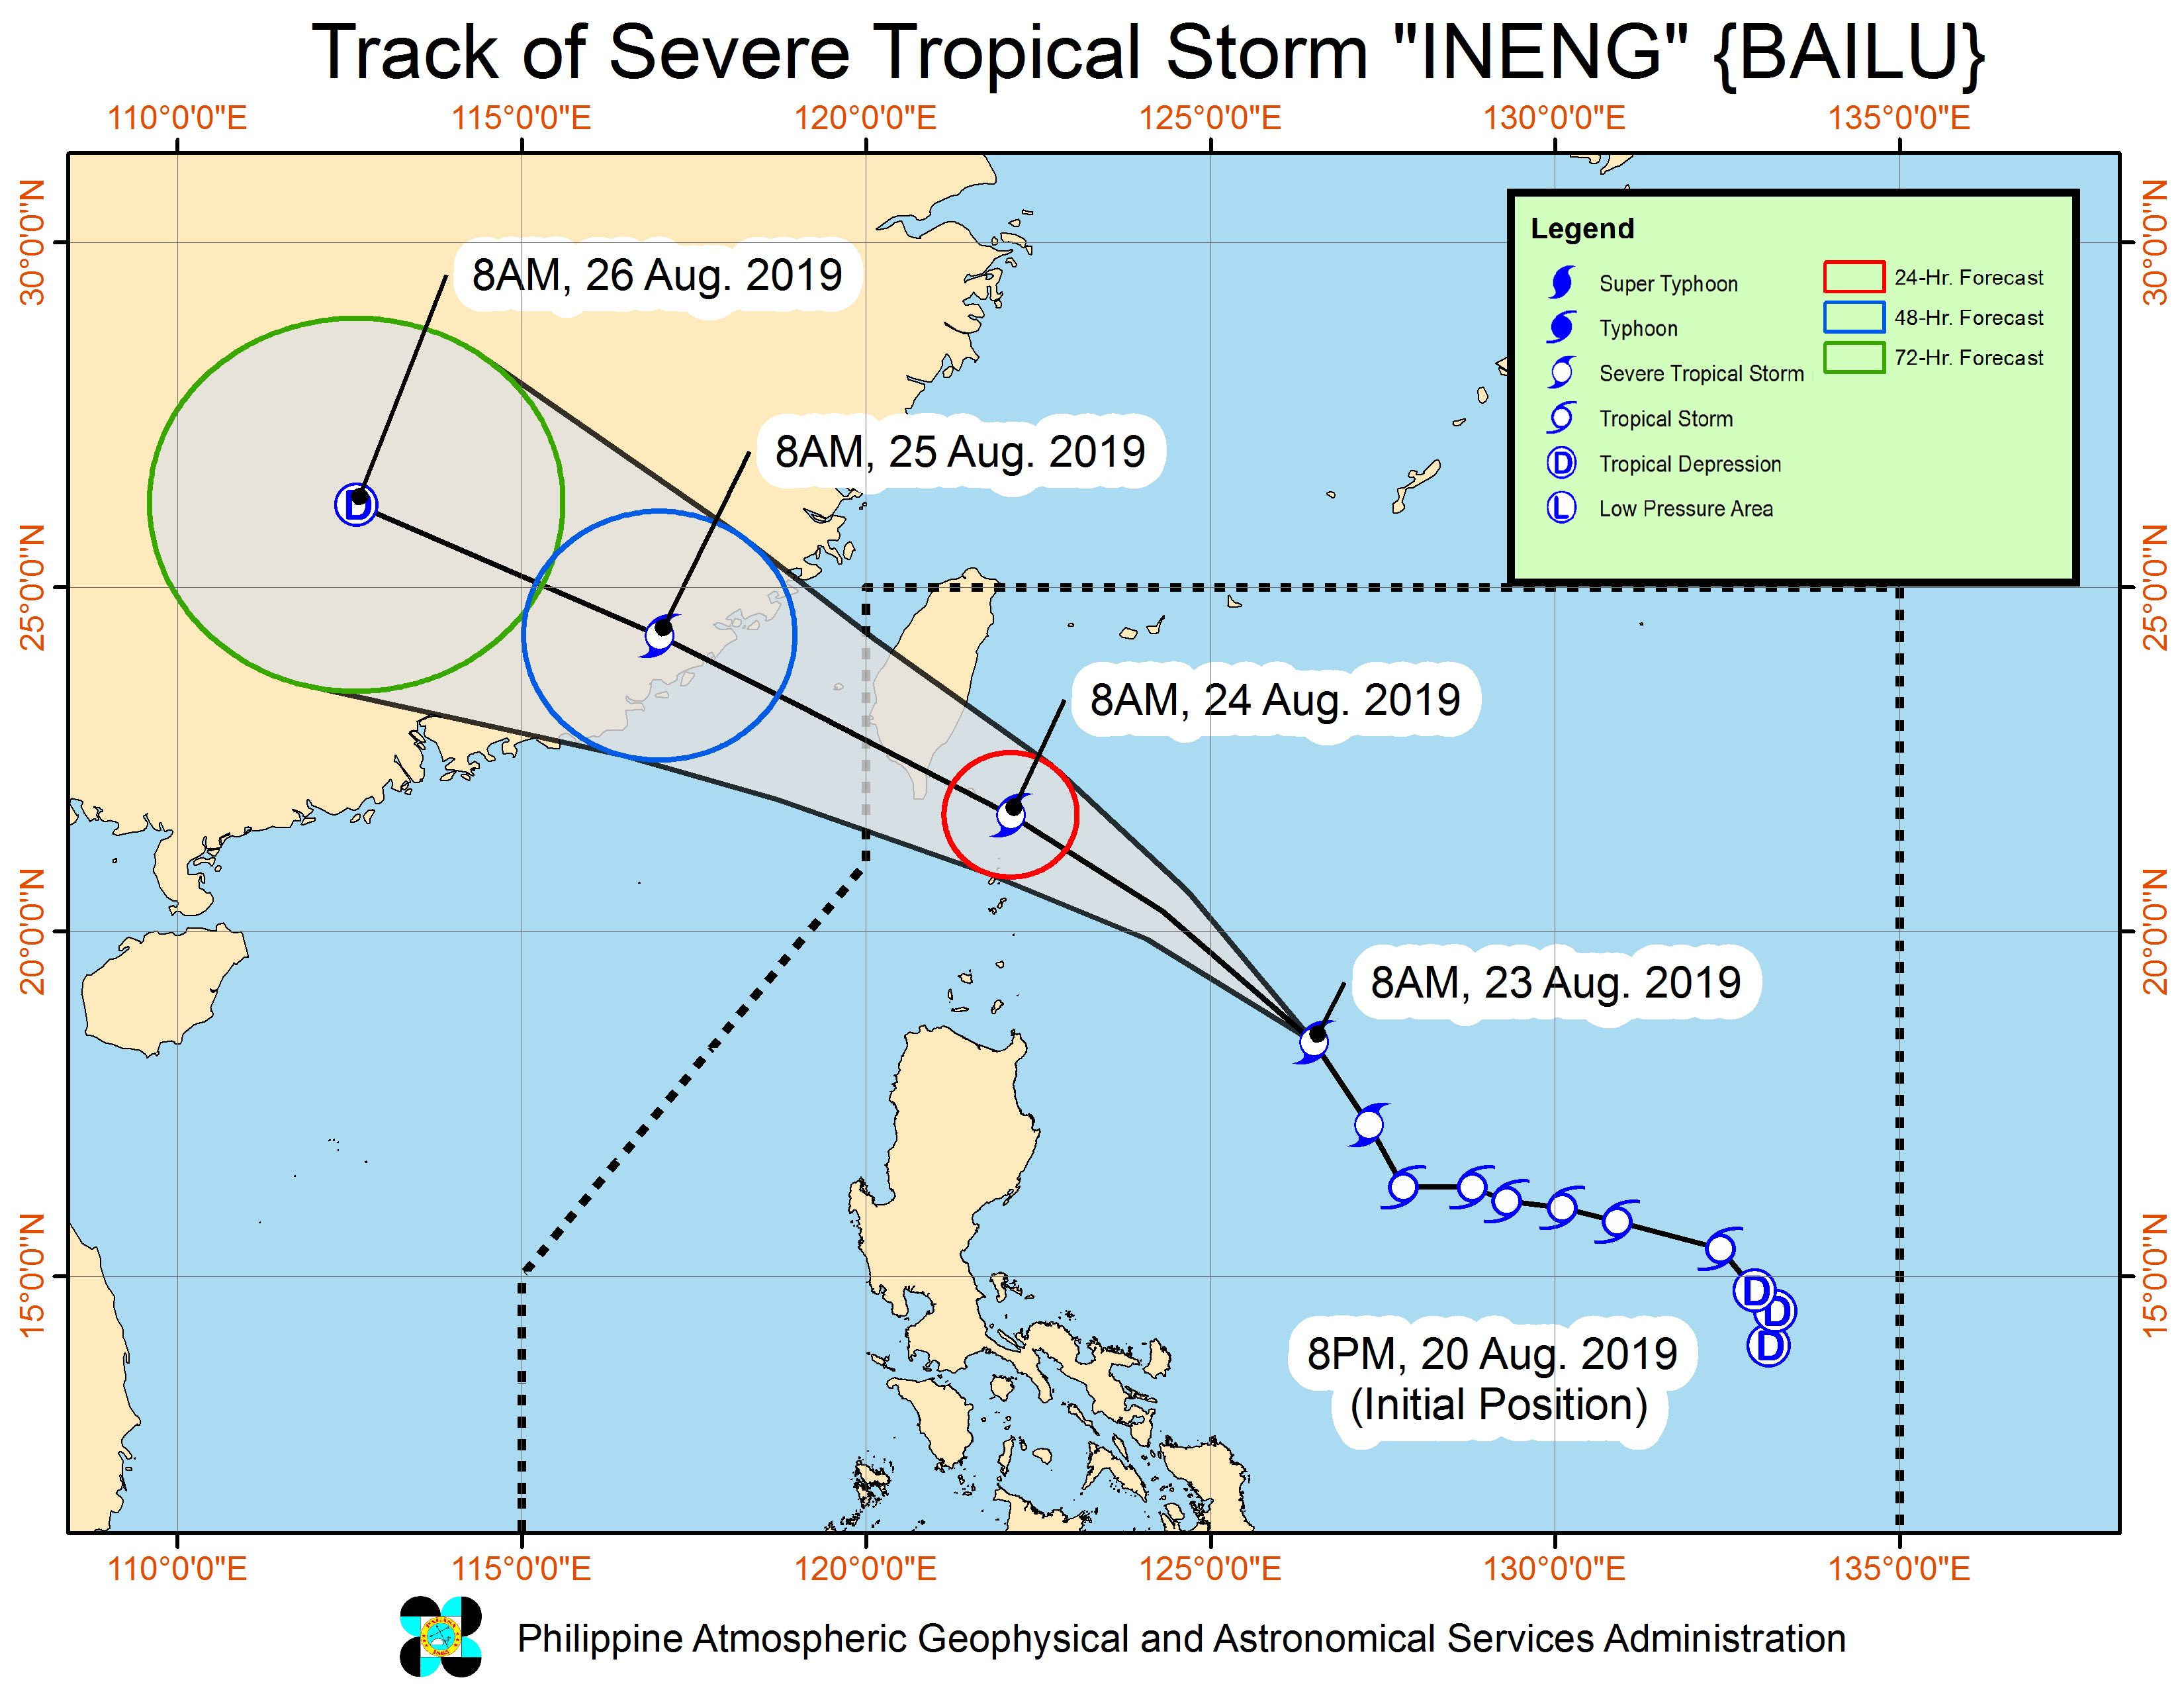 Forecast track of Severe Tropical Storm Ineng (Bailu) as of August 23, 2019, 11 am. Image from PAGASA